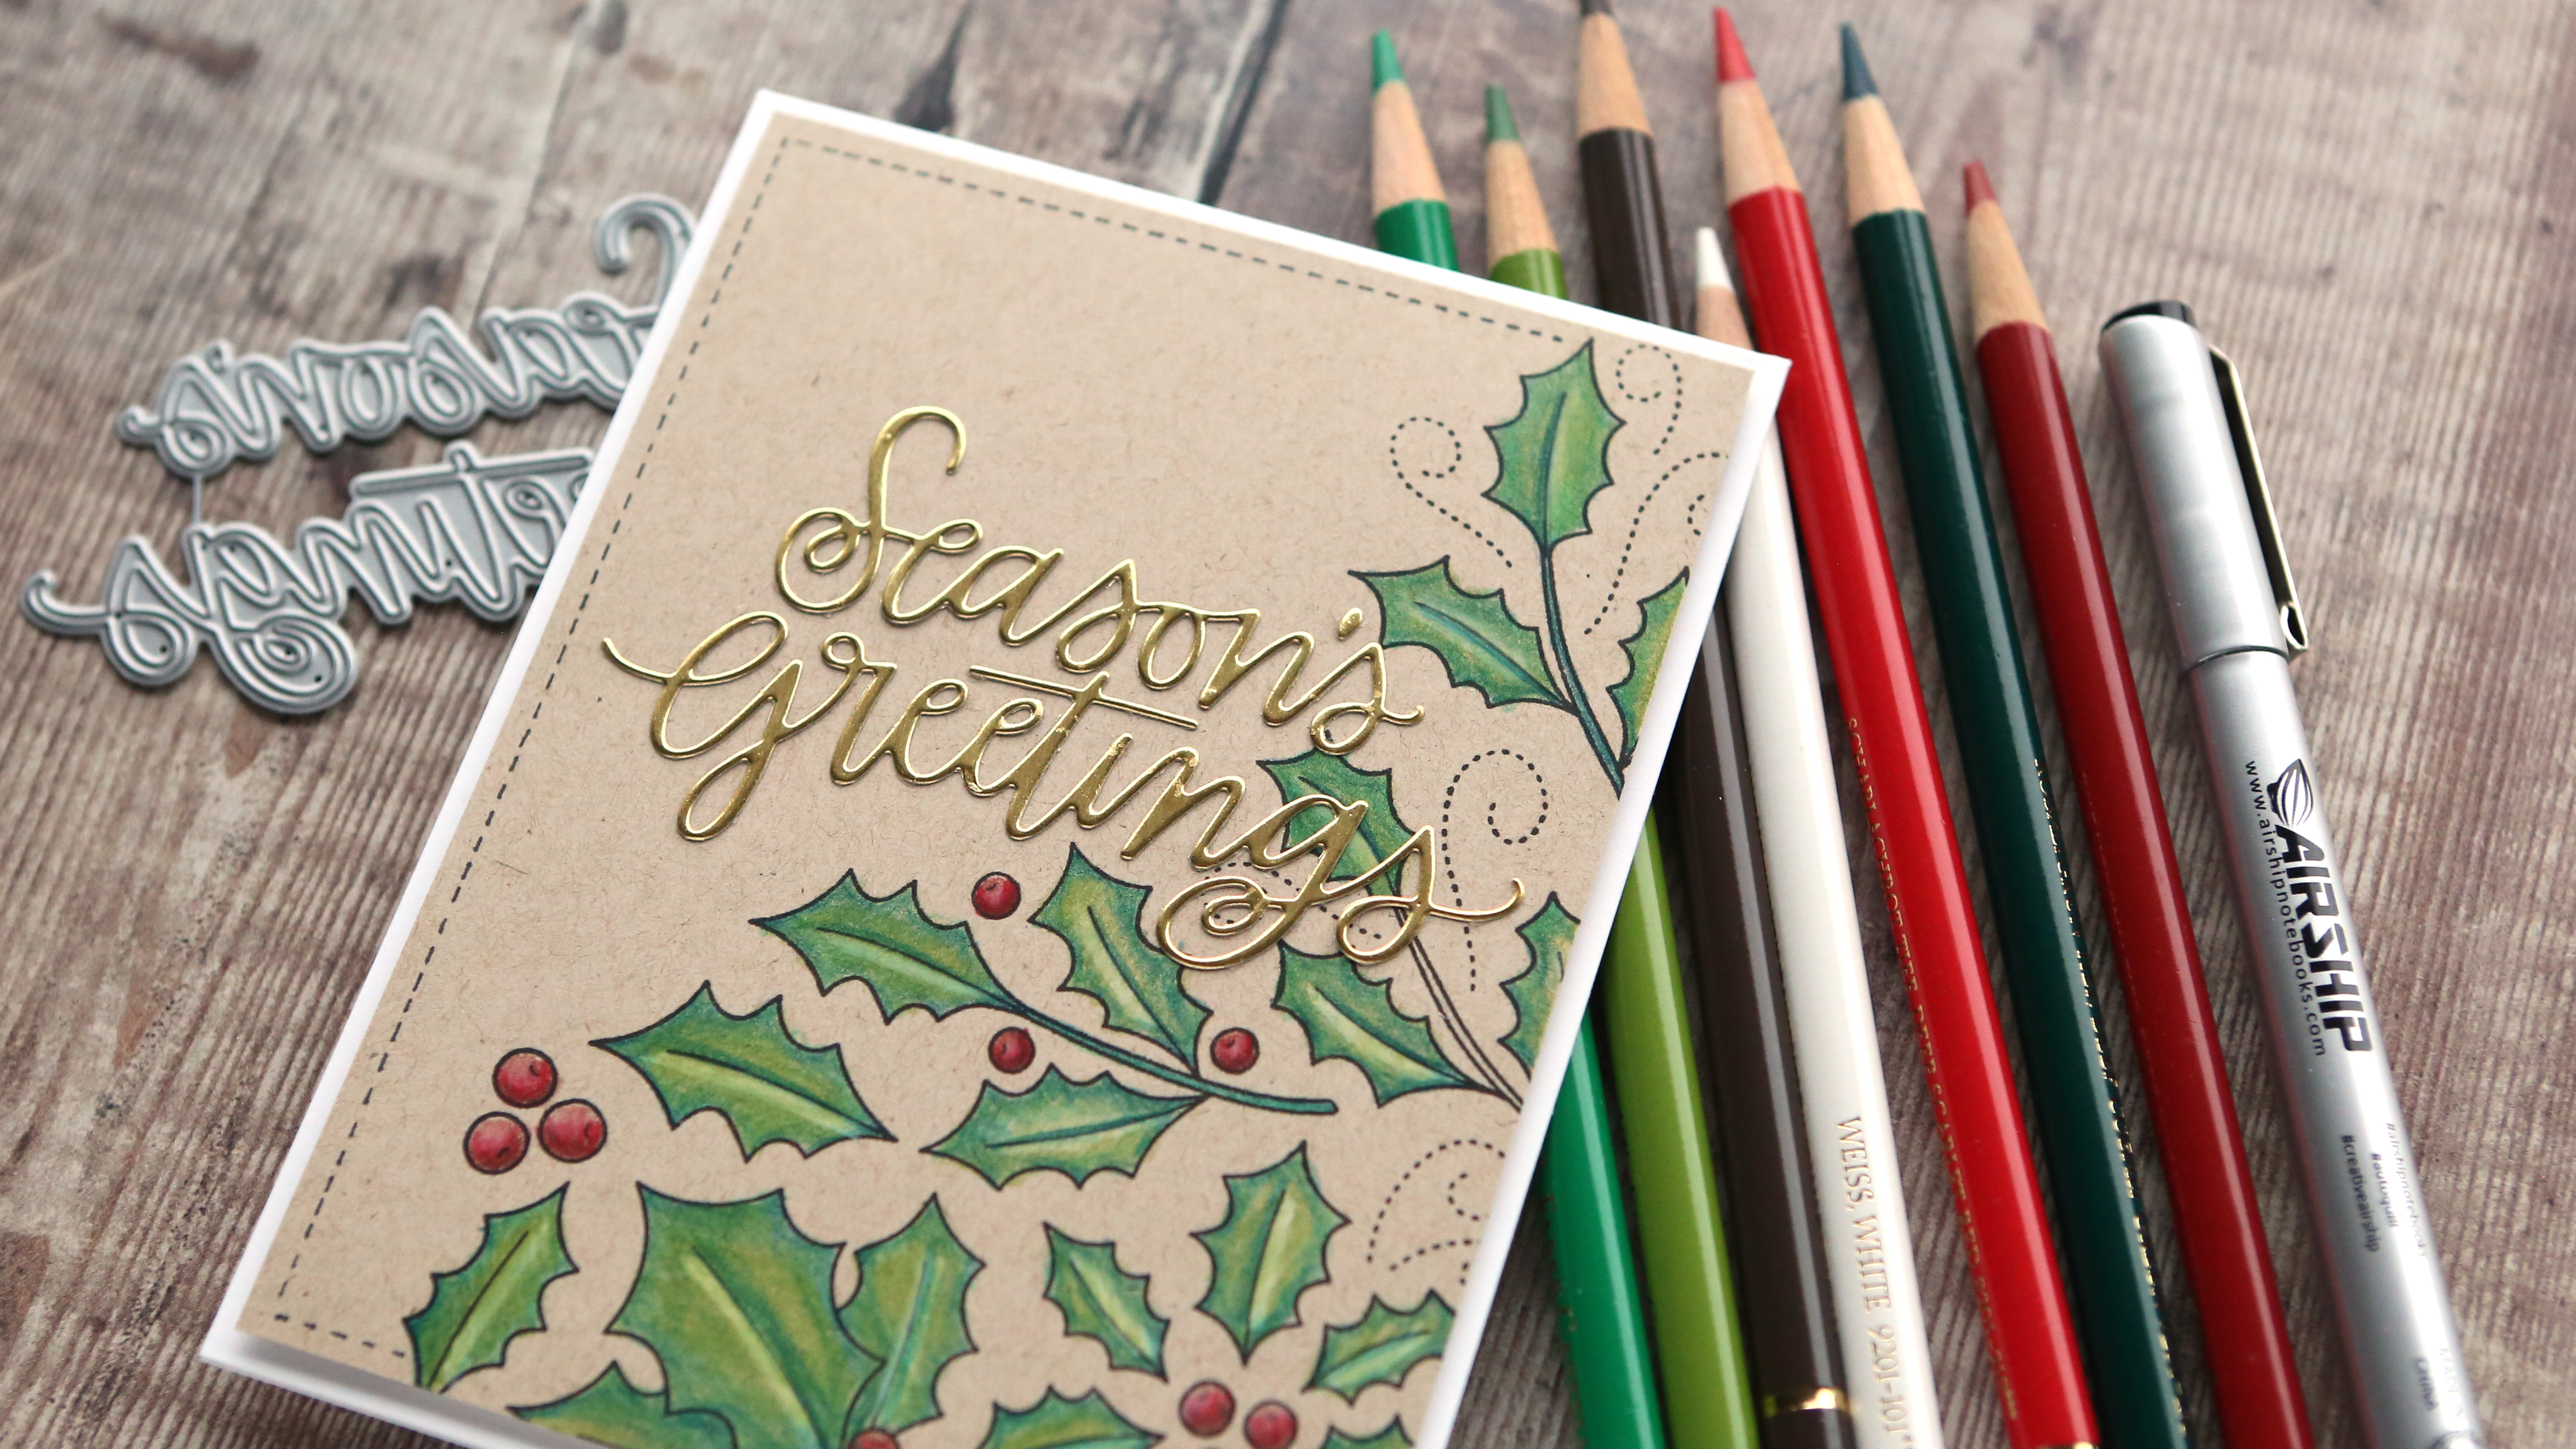 Holiday Card Series 2018 – Day 24 – Colored Pencils on Kraft Cardstock